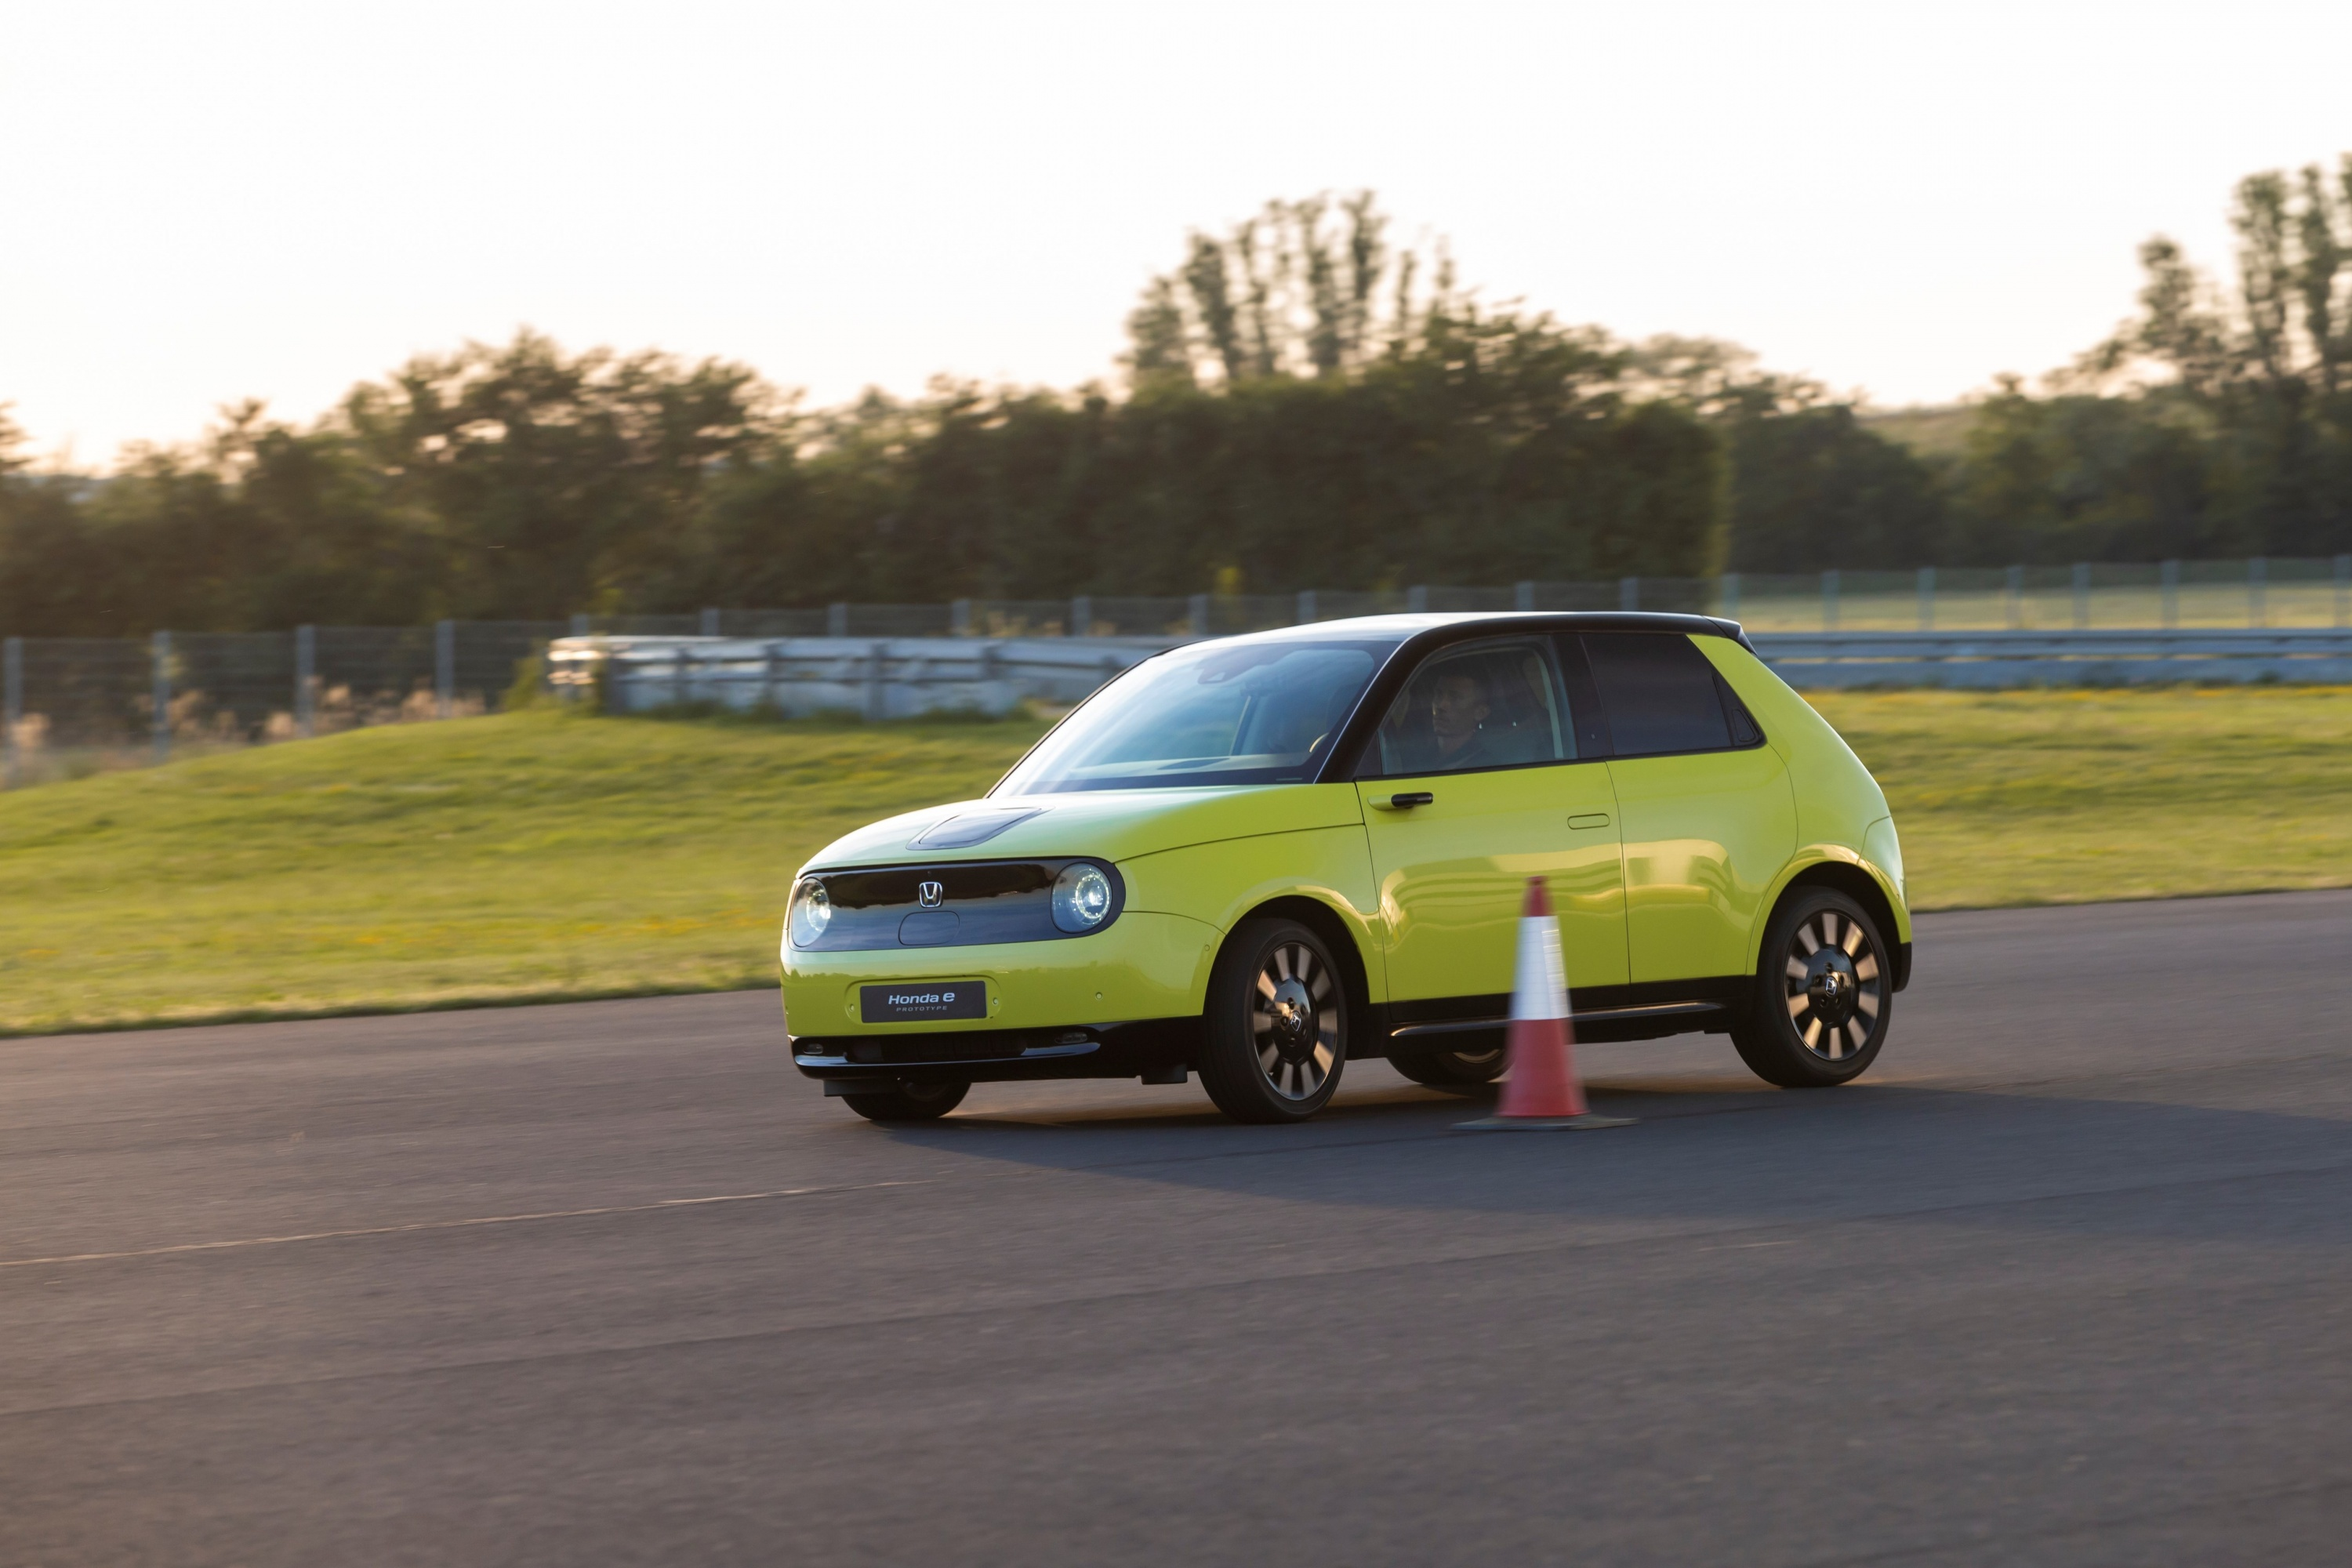 185280_HONDA_E_THE_PERFECT_BALANCE_OF_EFFICIENCY_AND_PERFORMANCE_FOR_URBAN.jpg